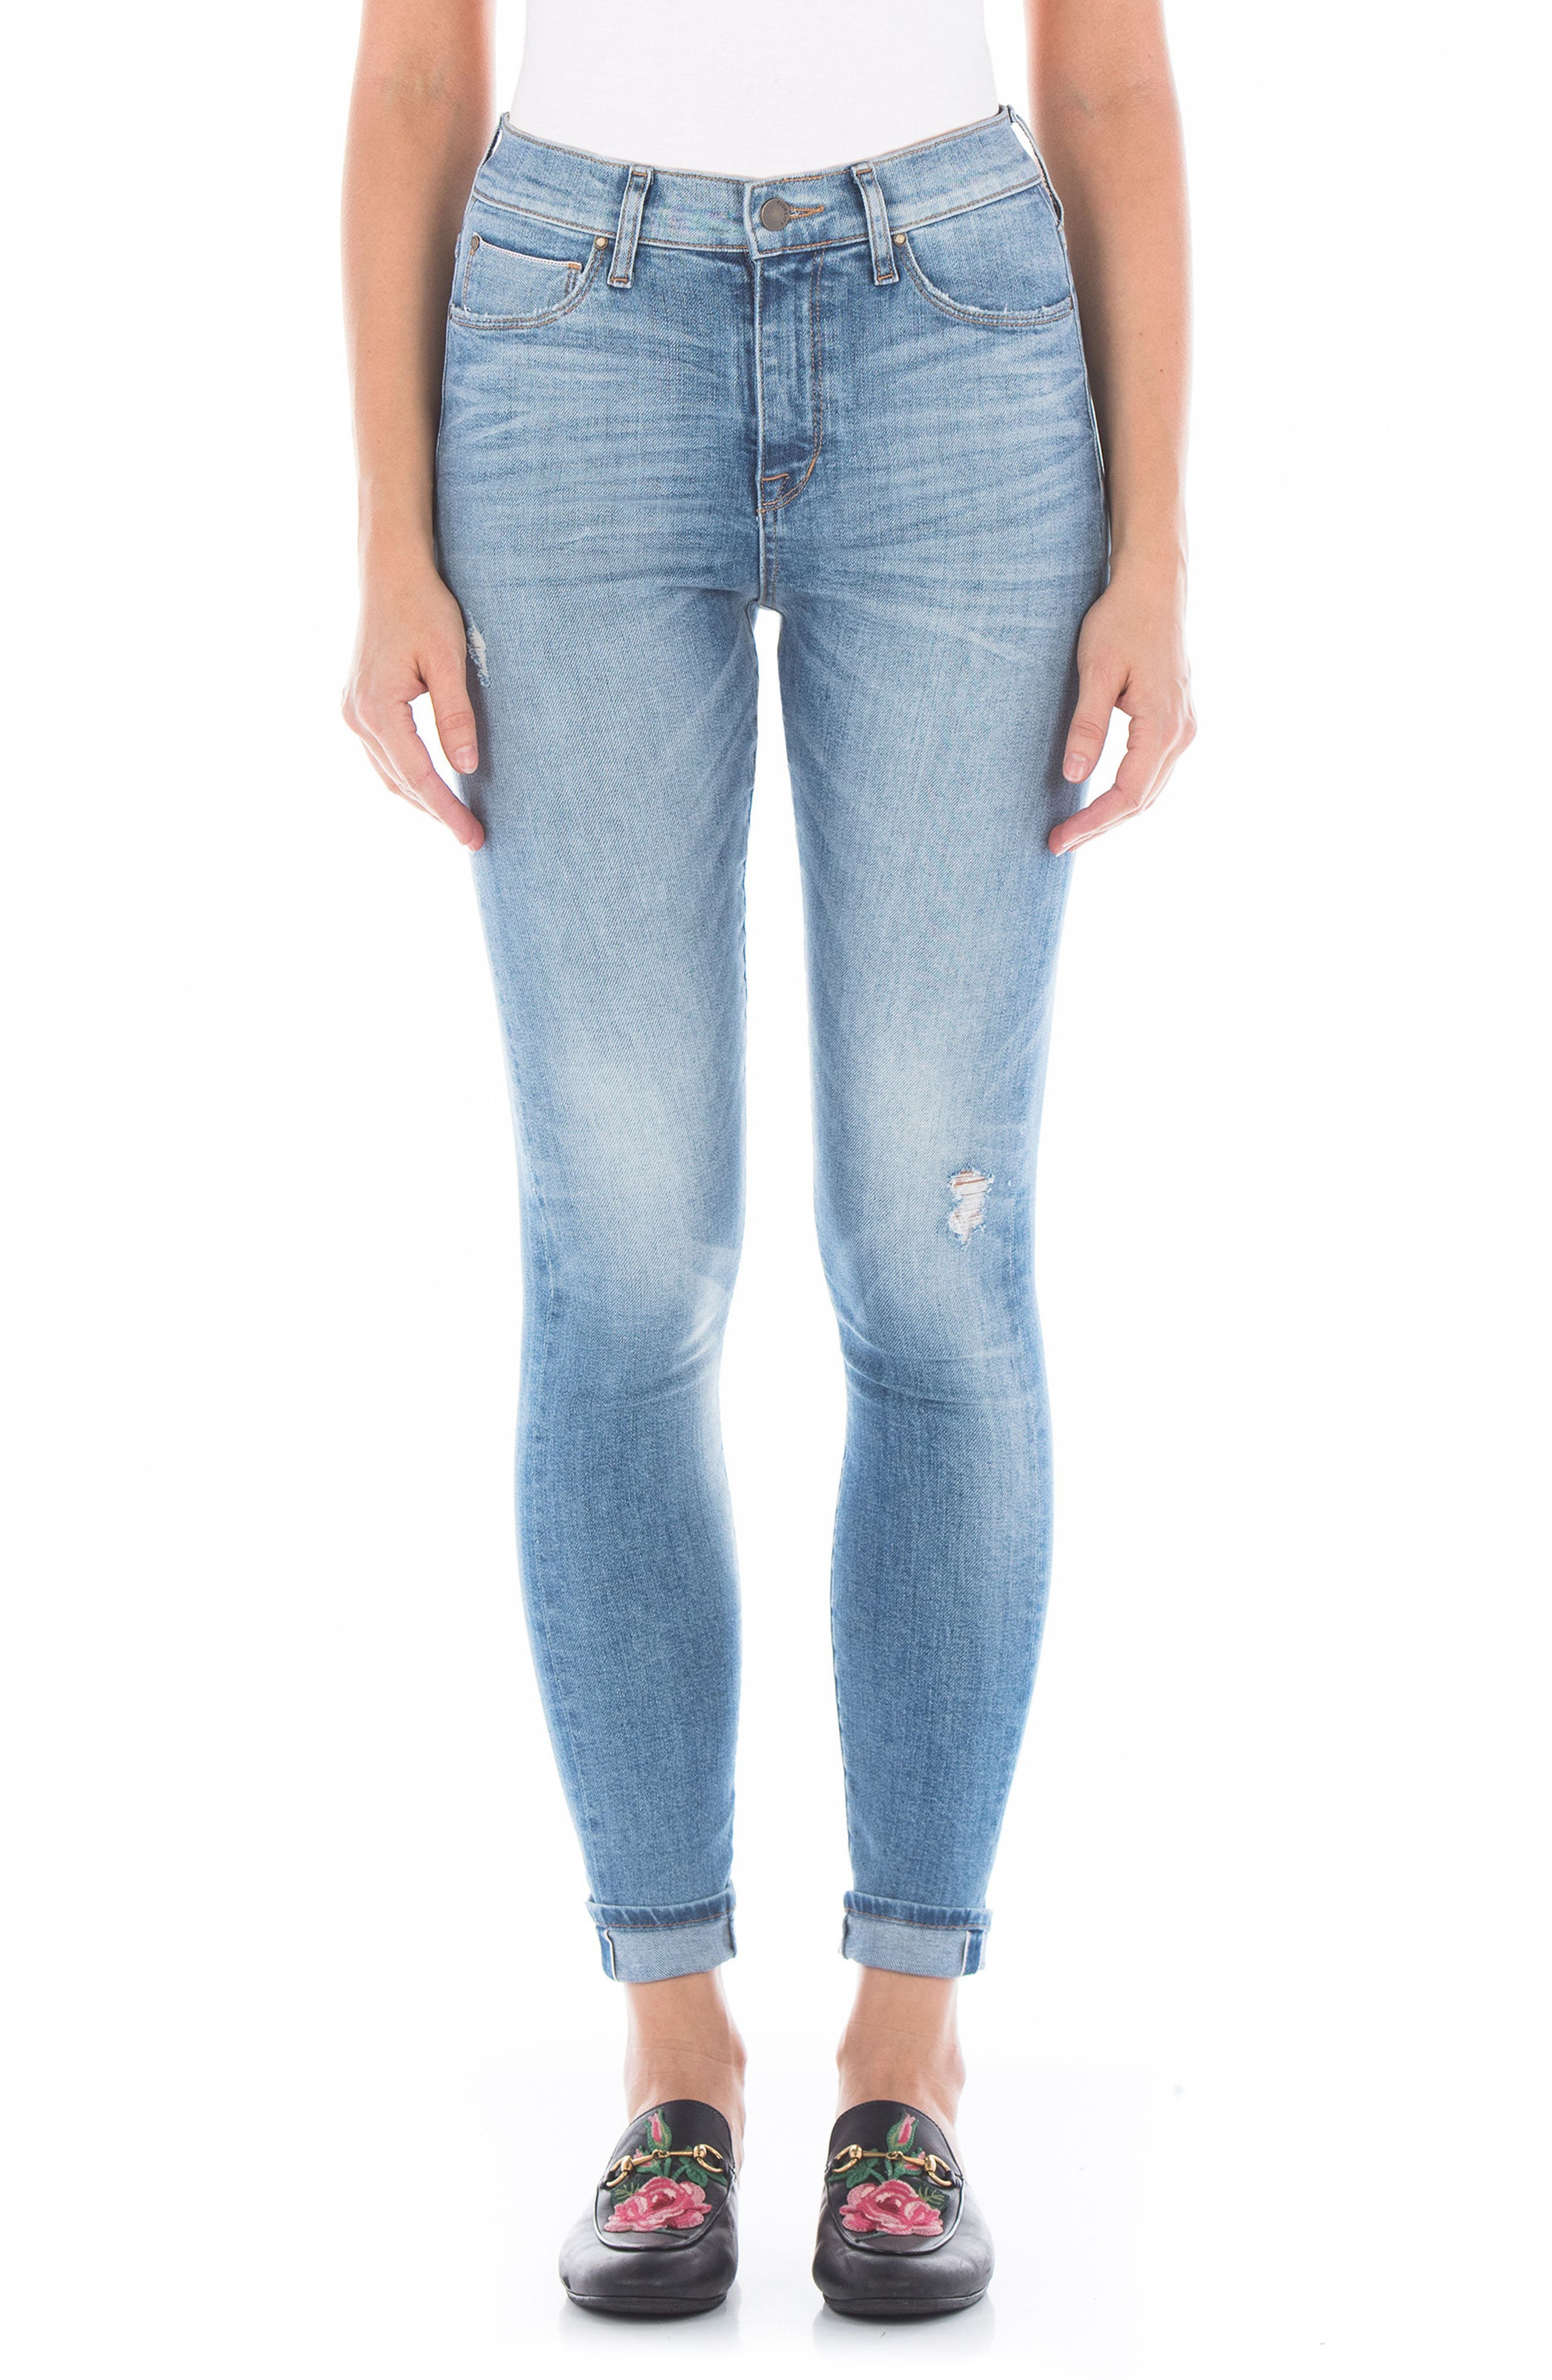 Gwen High Waist Skinny Jeans,                             Main thumbnail 1, color,                             76 Summer